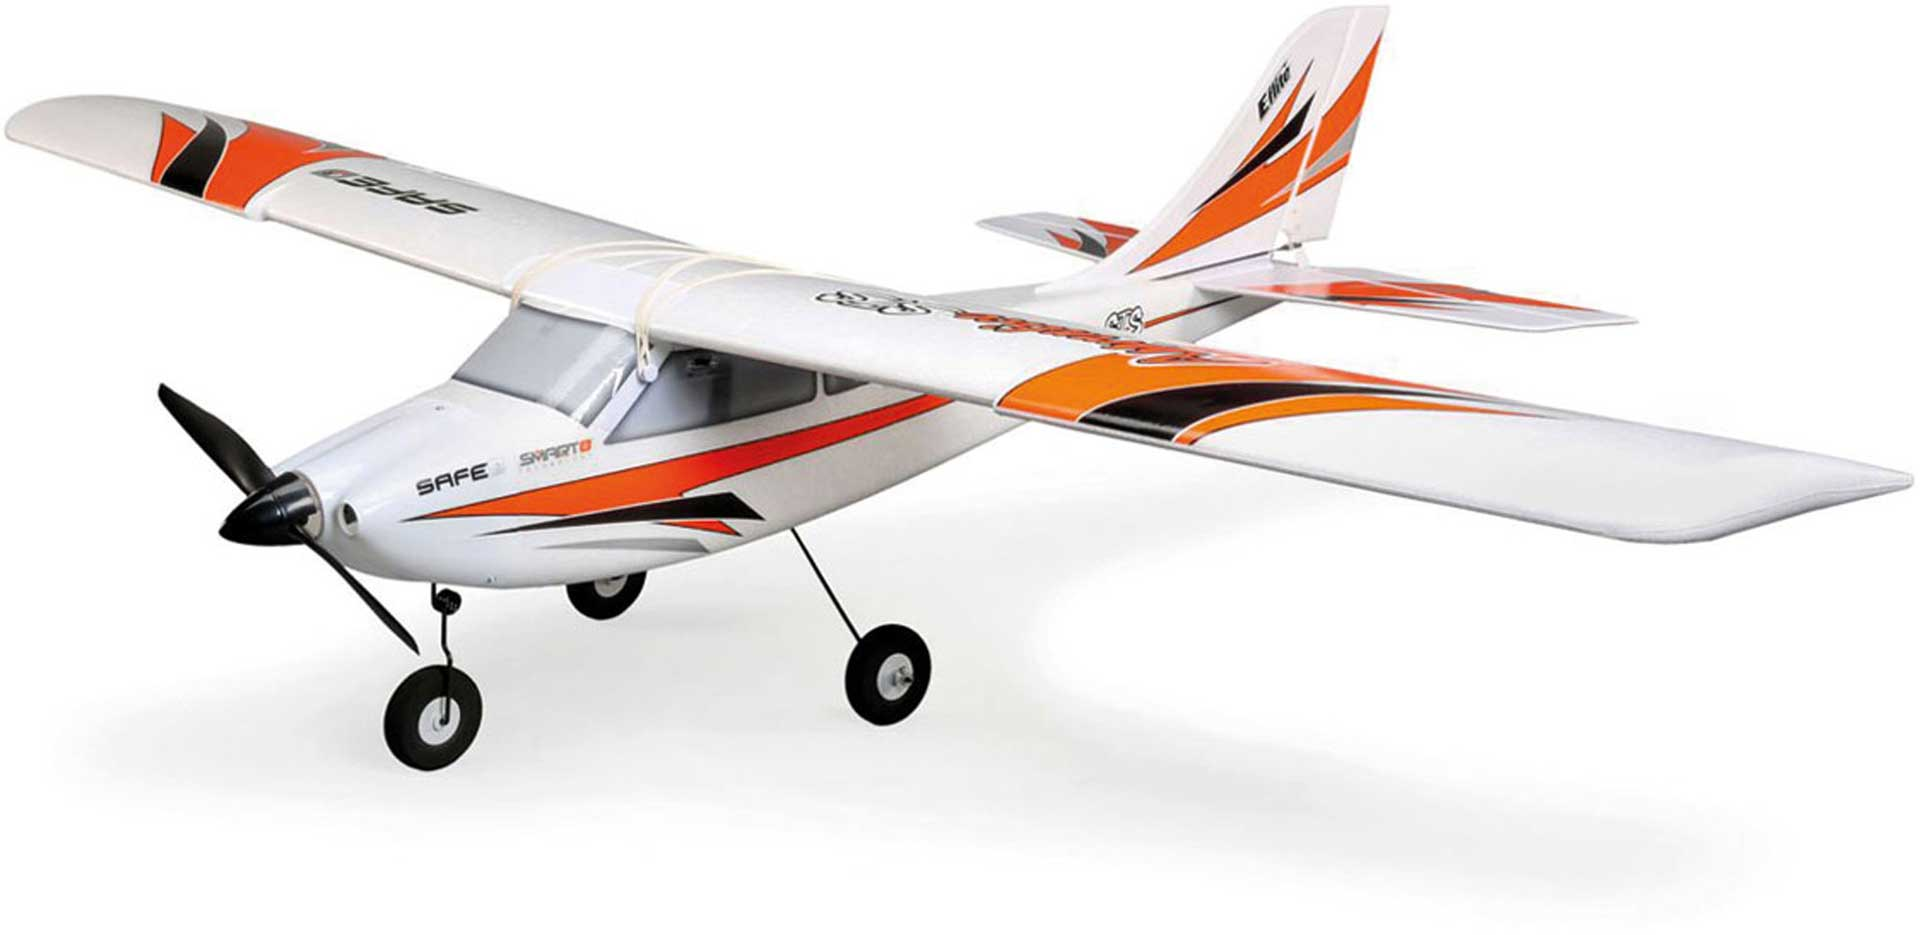 E-Flite Apprentice STS 1.5m with SAFE 1.5m BNF Basic